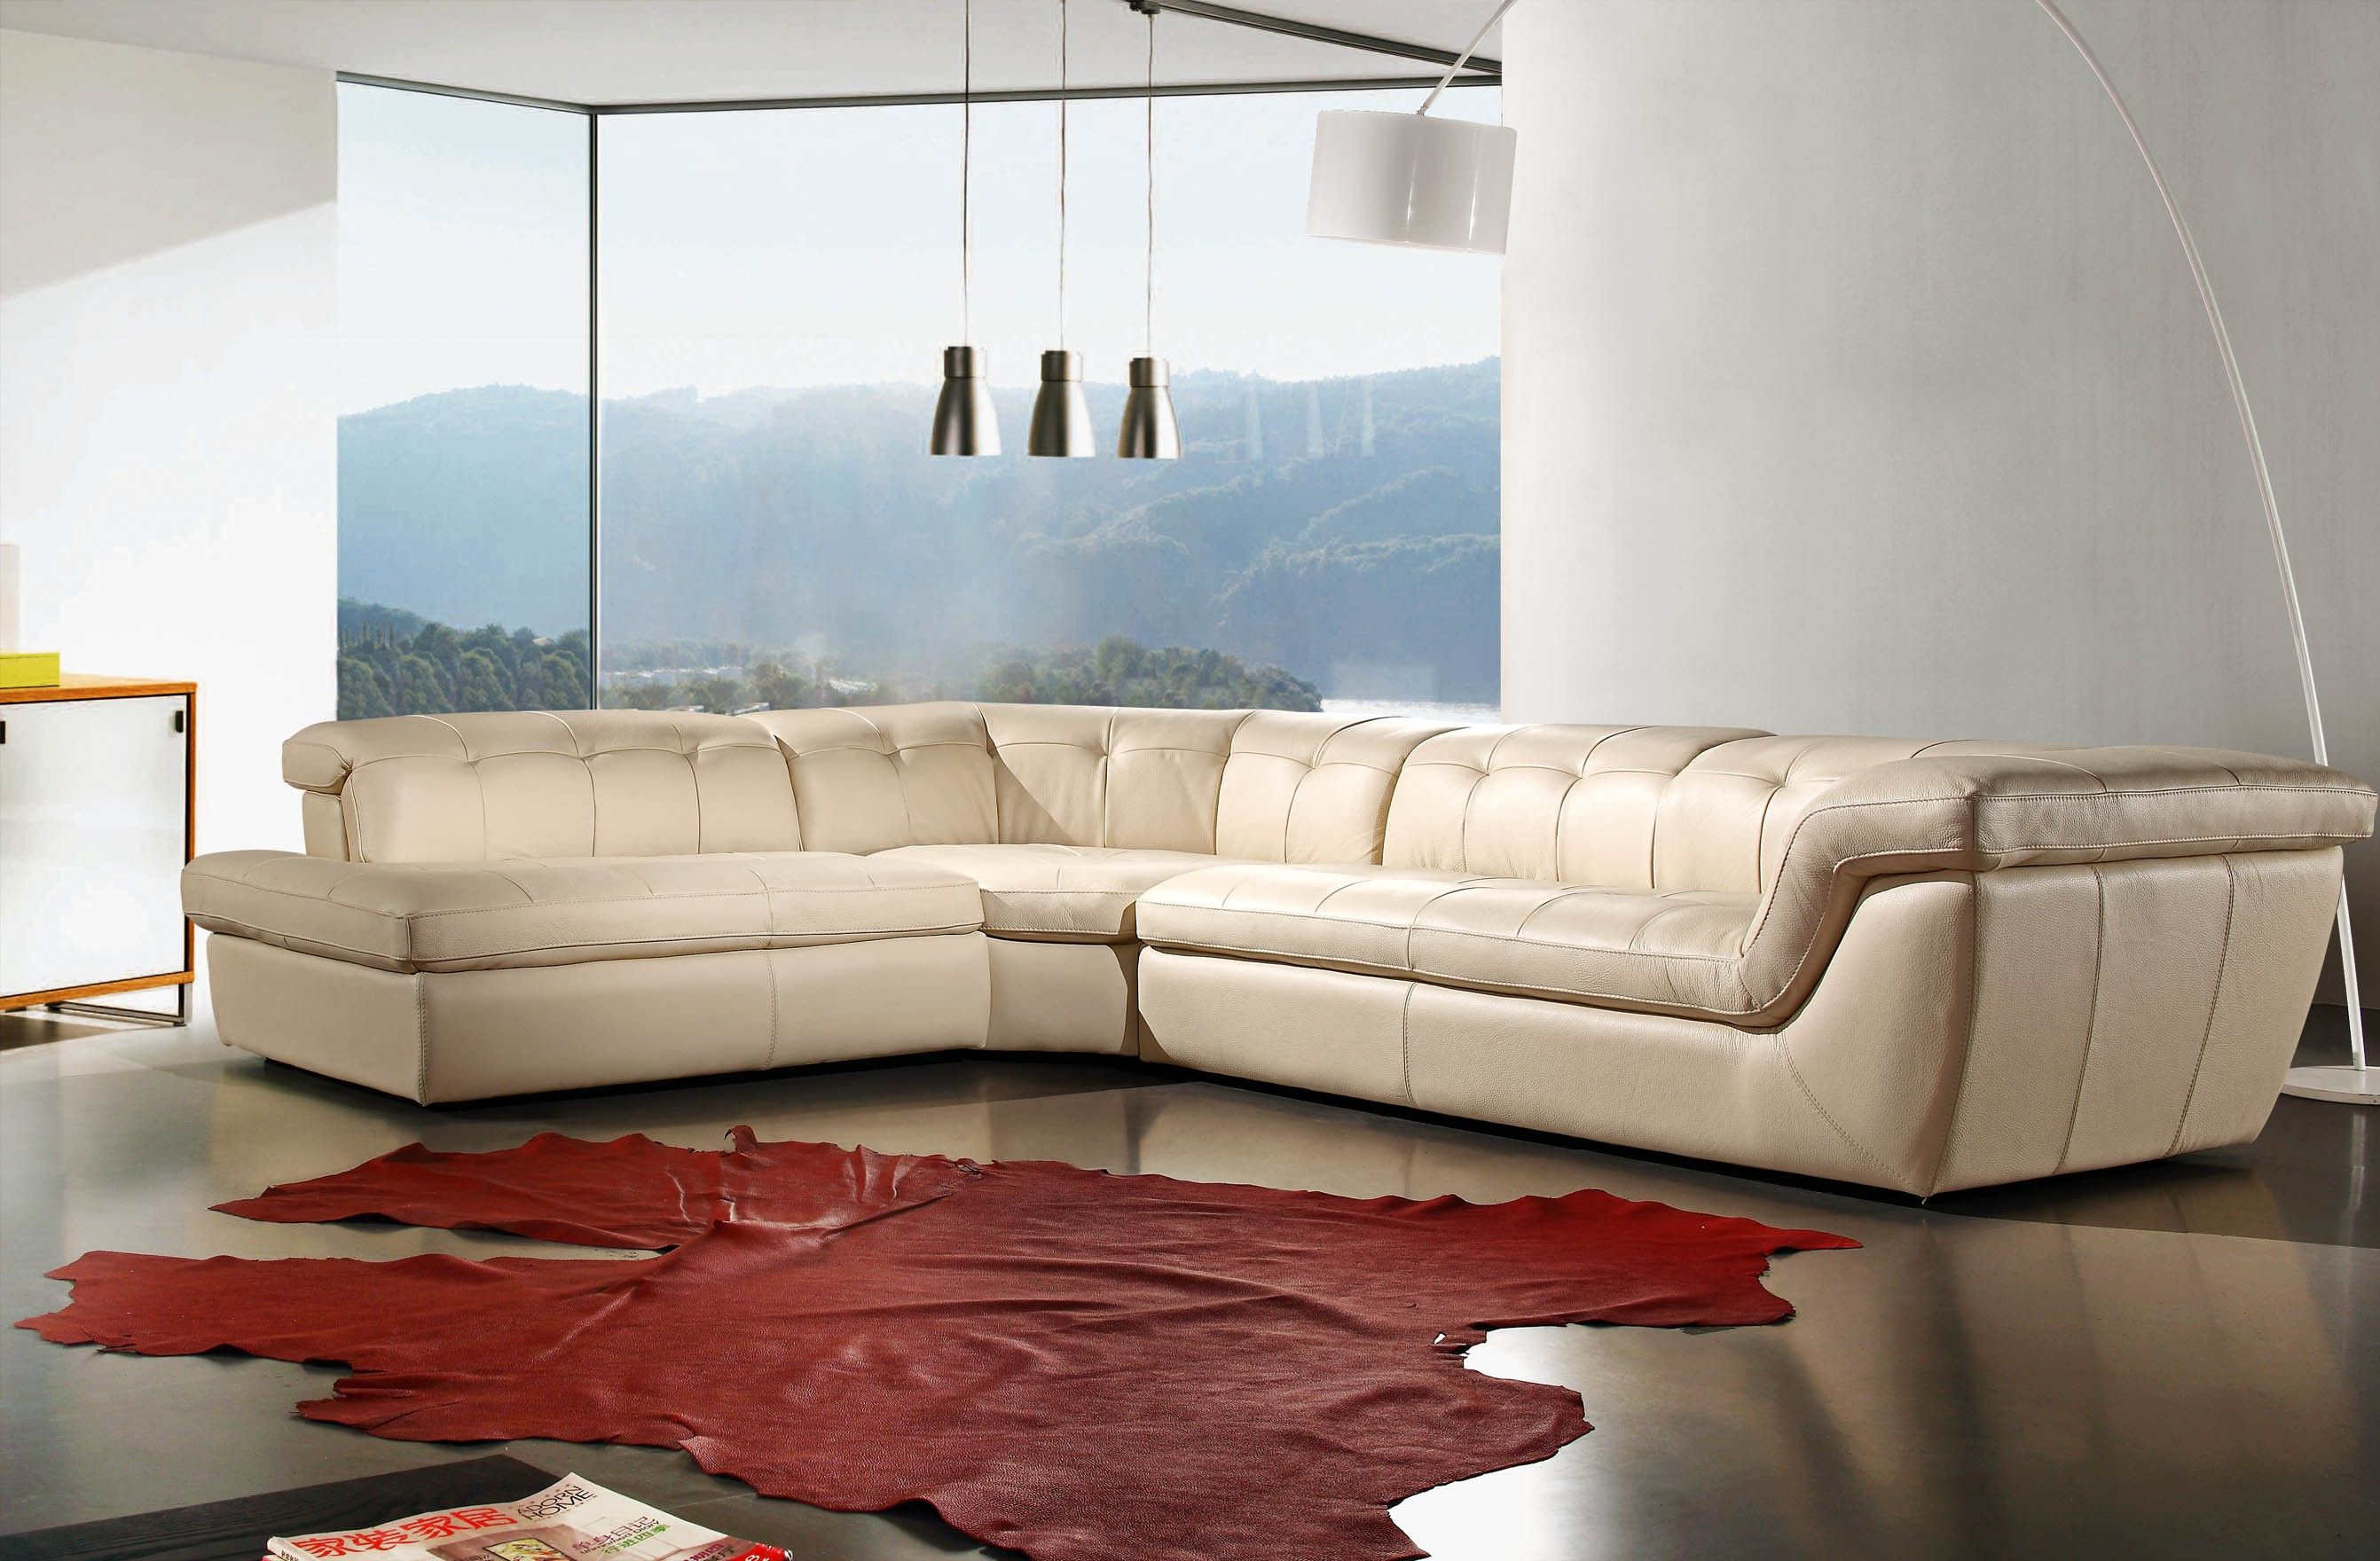 Living Room Design With Sectional Sofa Amusing American Contemporary Sofa 10 Тыс Изображений Найдено В Яндекс Inspiration